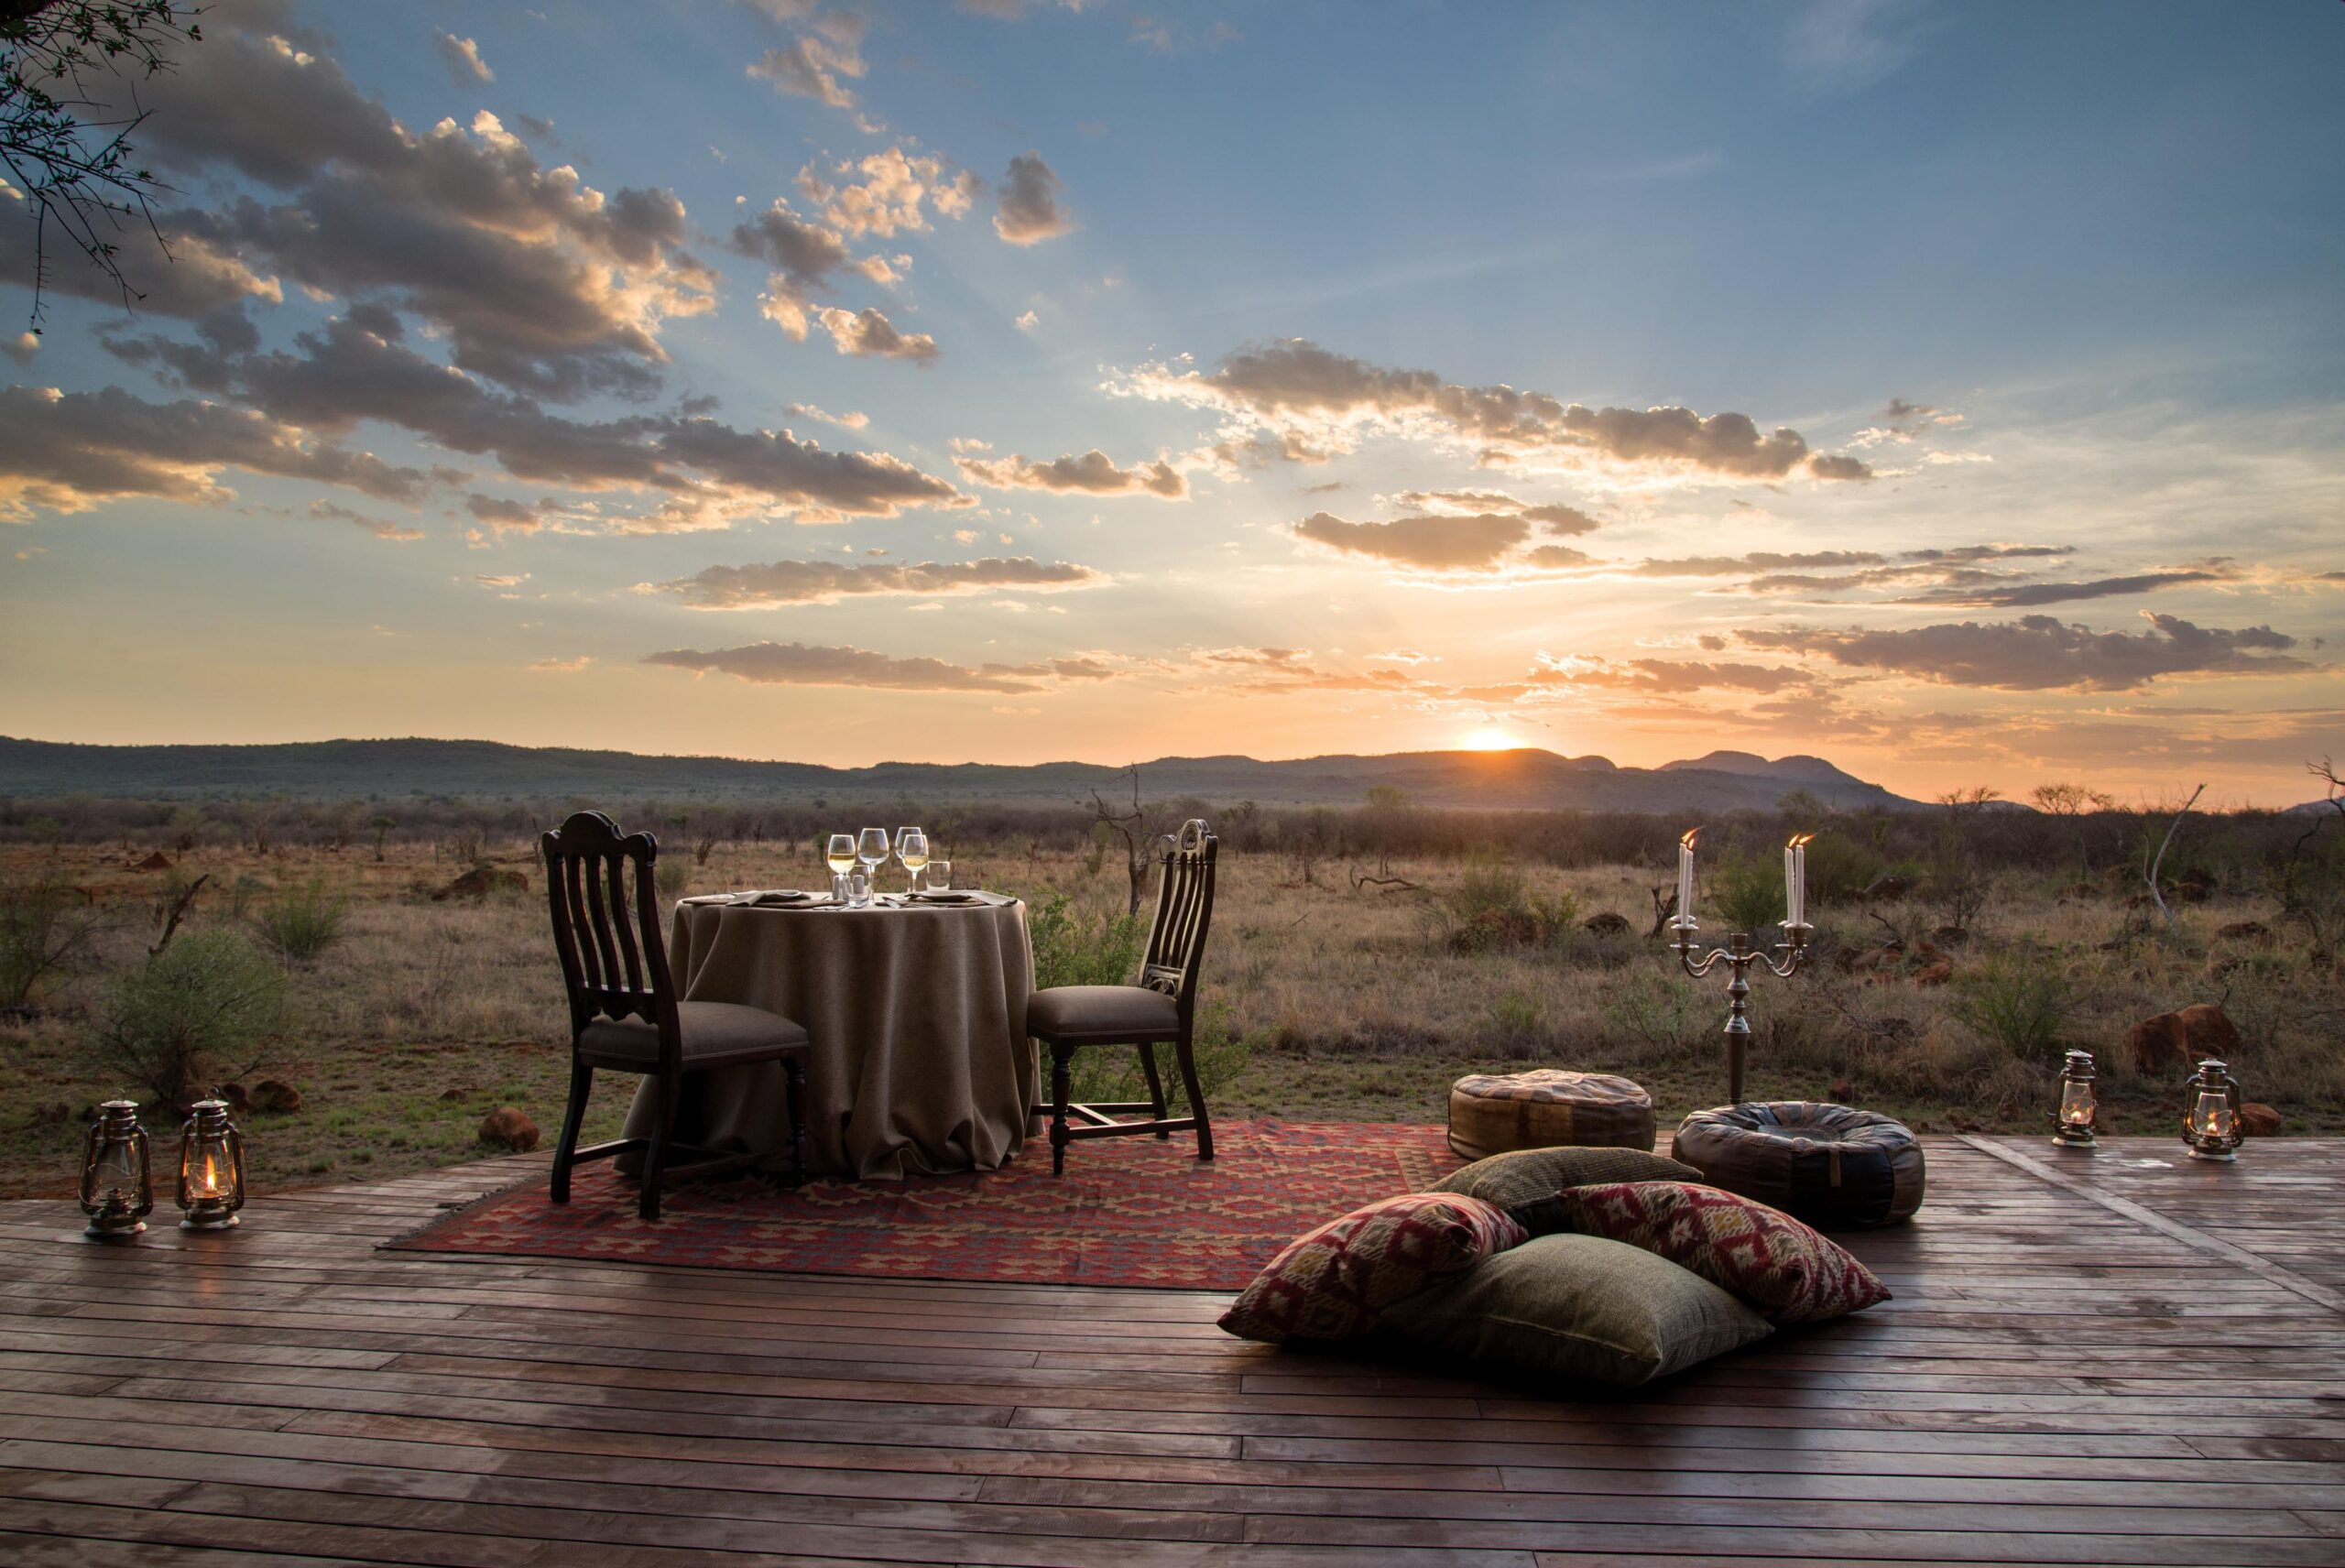 beautiful private dinner option with dining table and pillows set up at sunset madikwe hills in madikwe